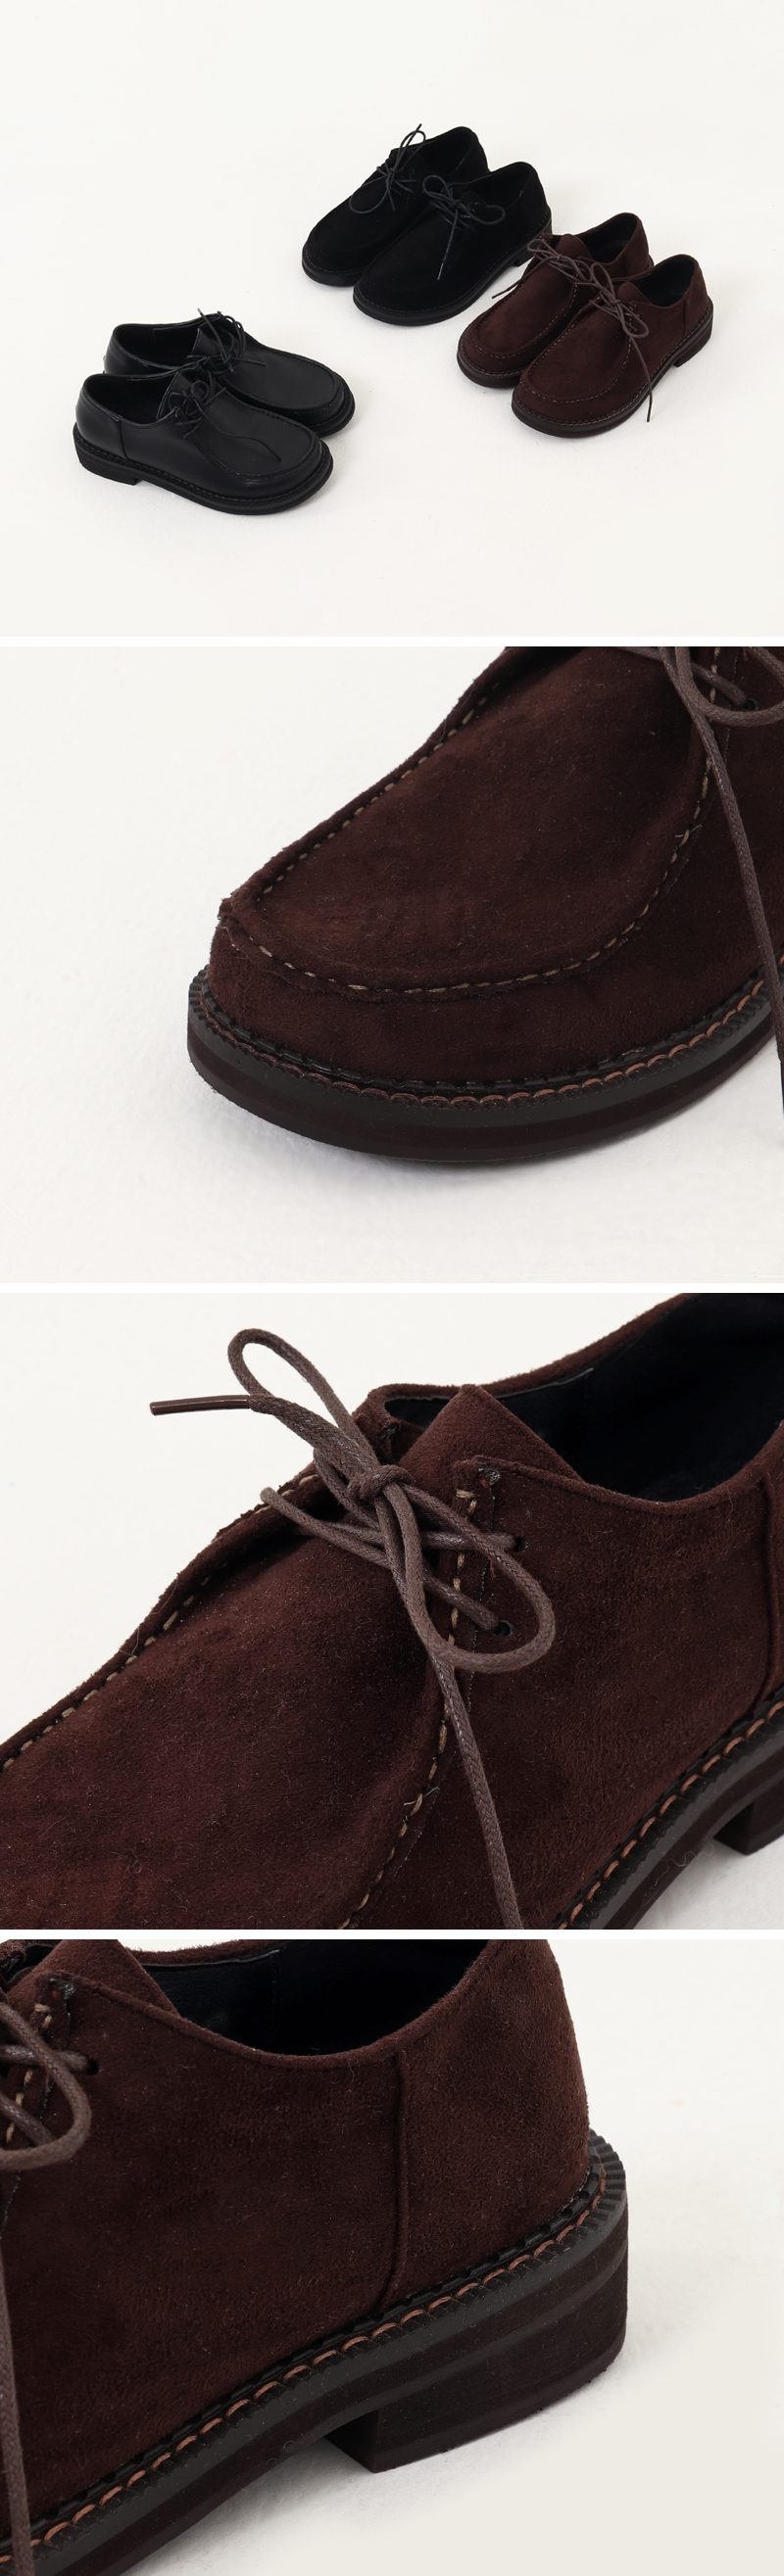 Stitched suede flat loafers